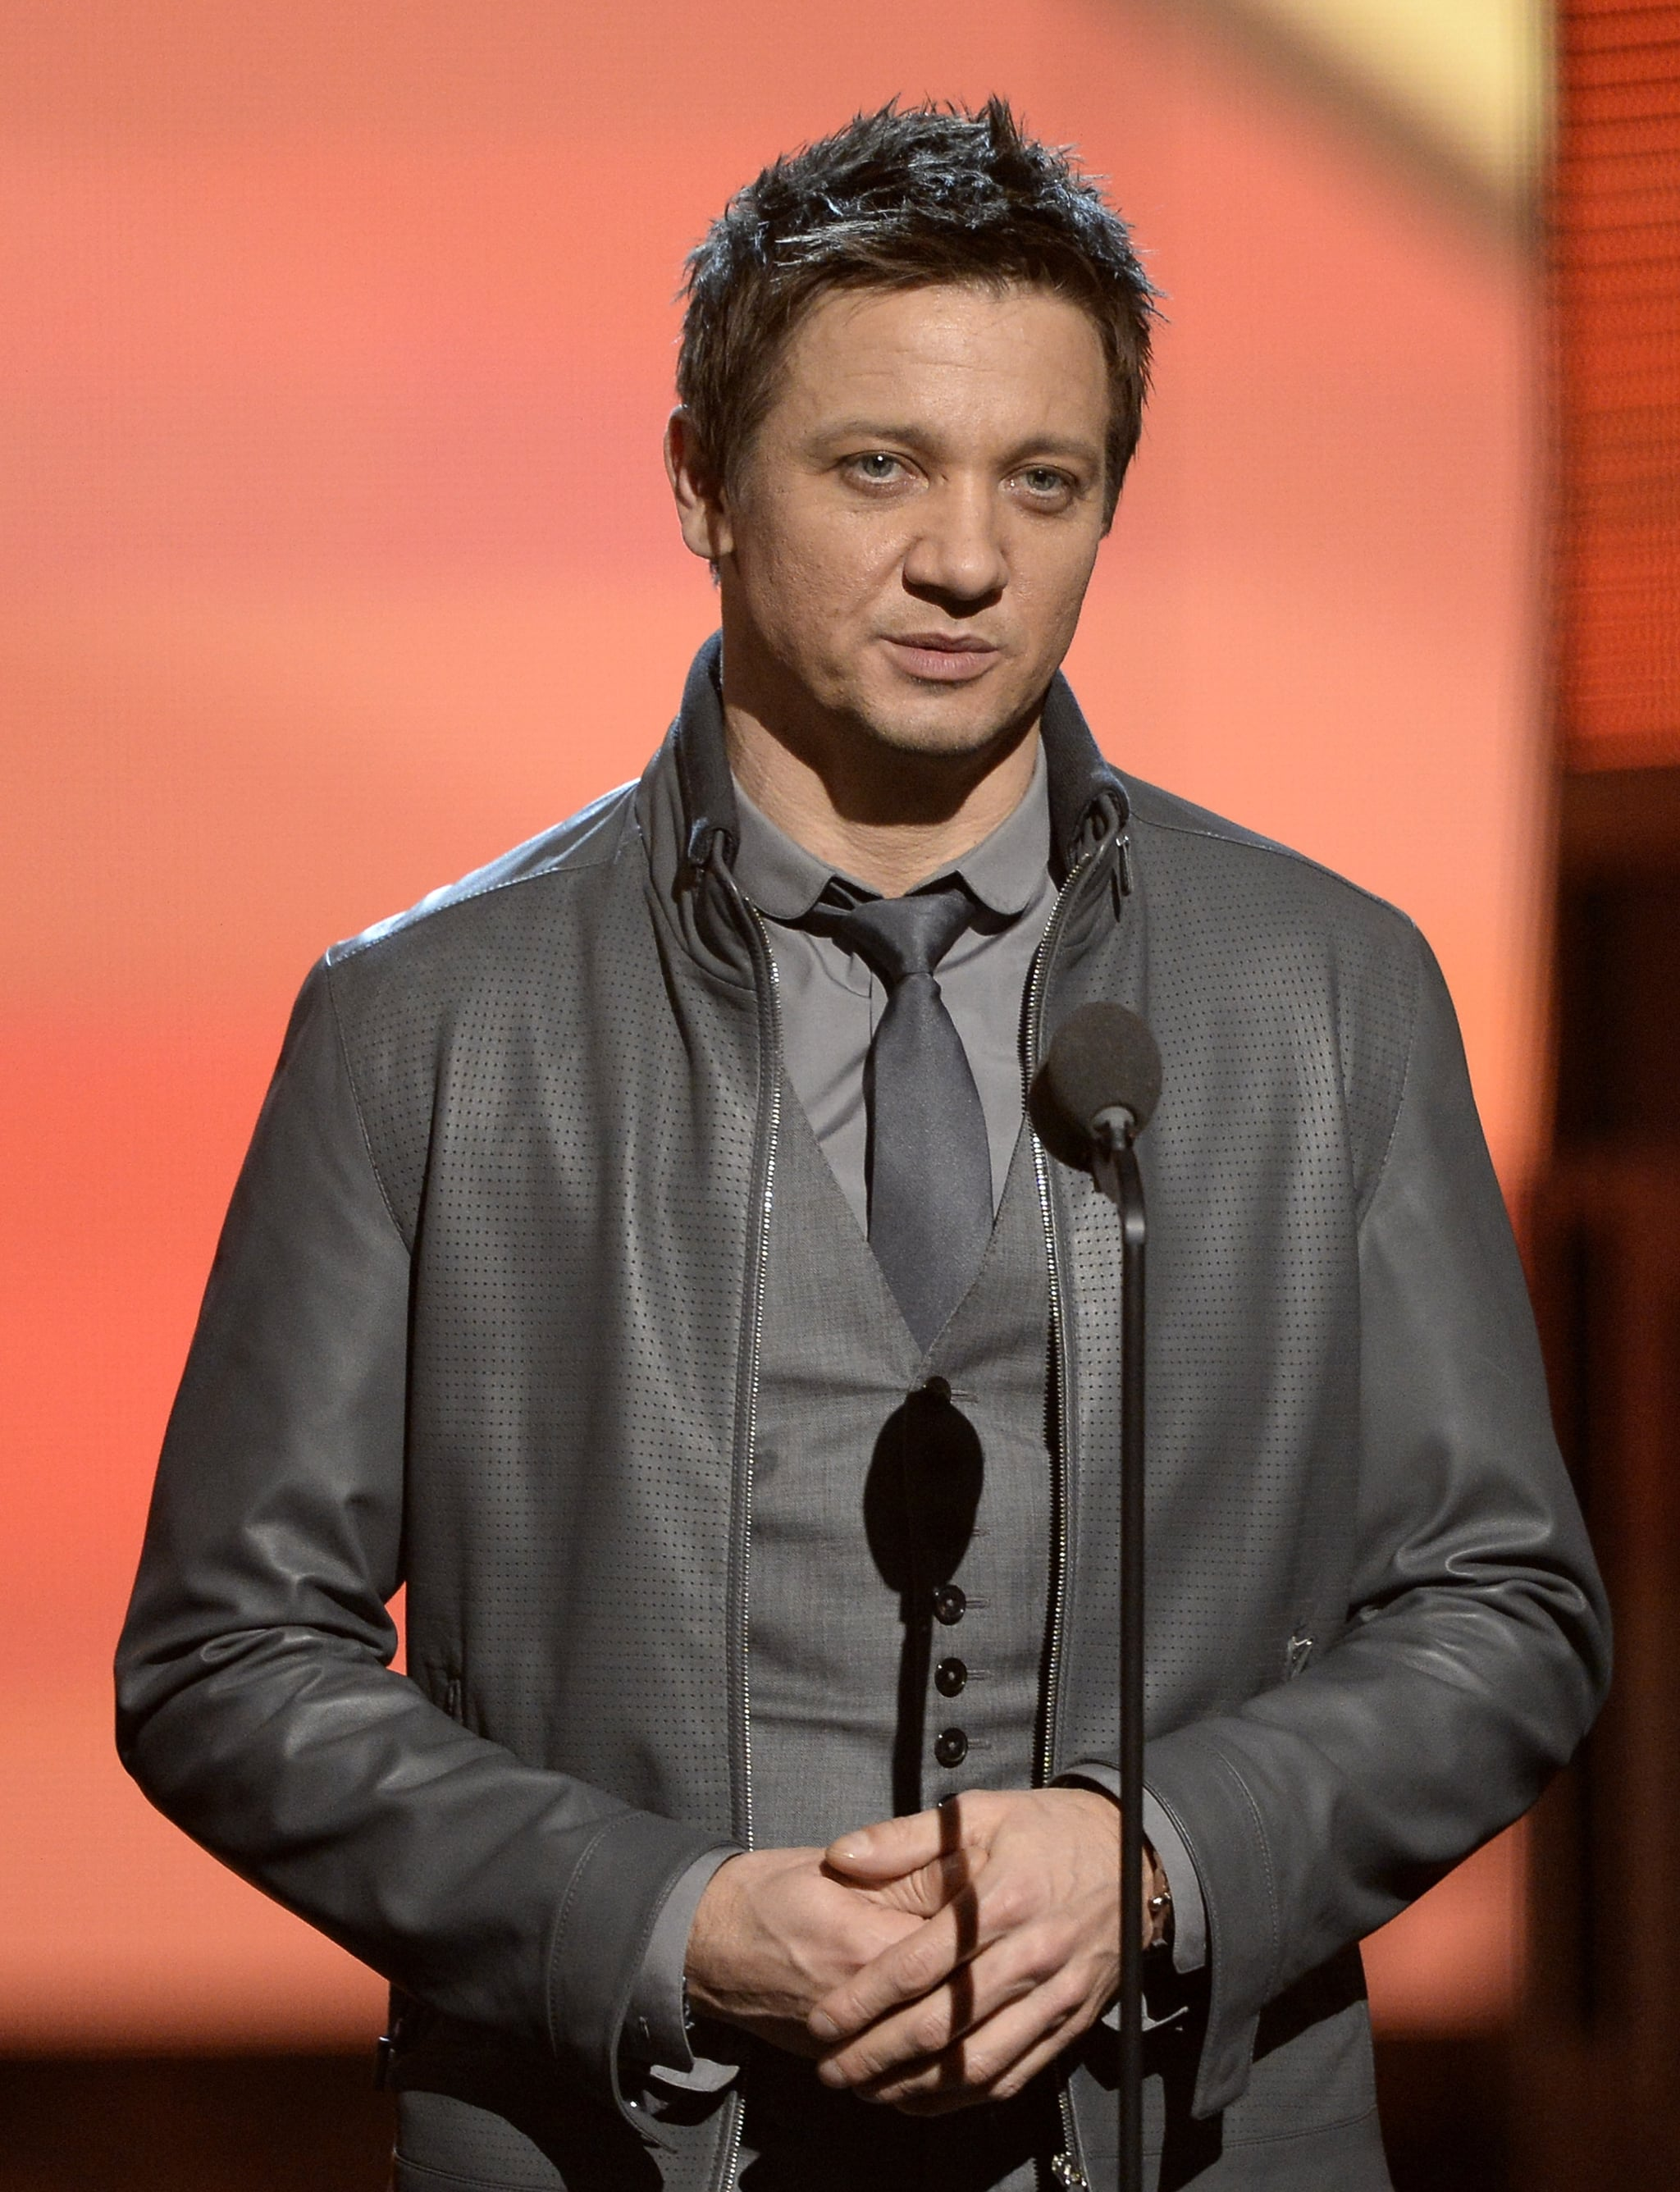 Jeremy Renner popped up to introduce an act at the Grammys.